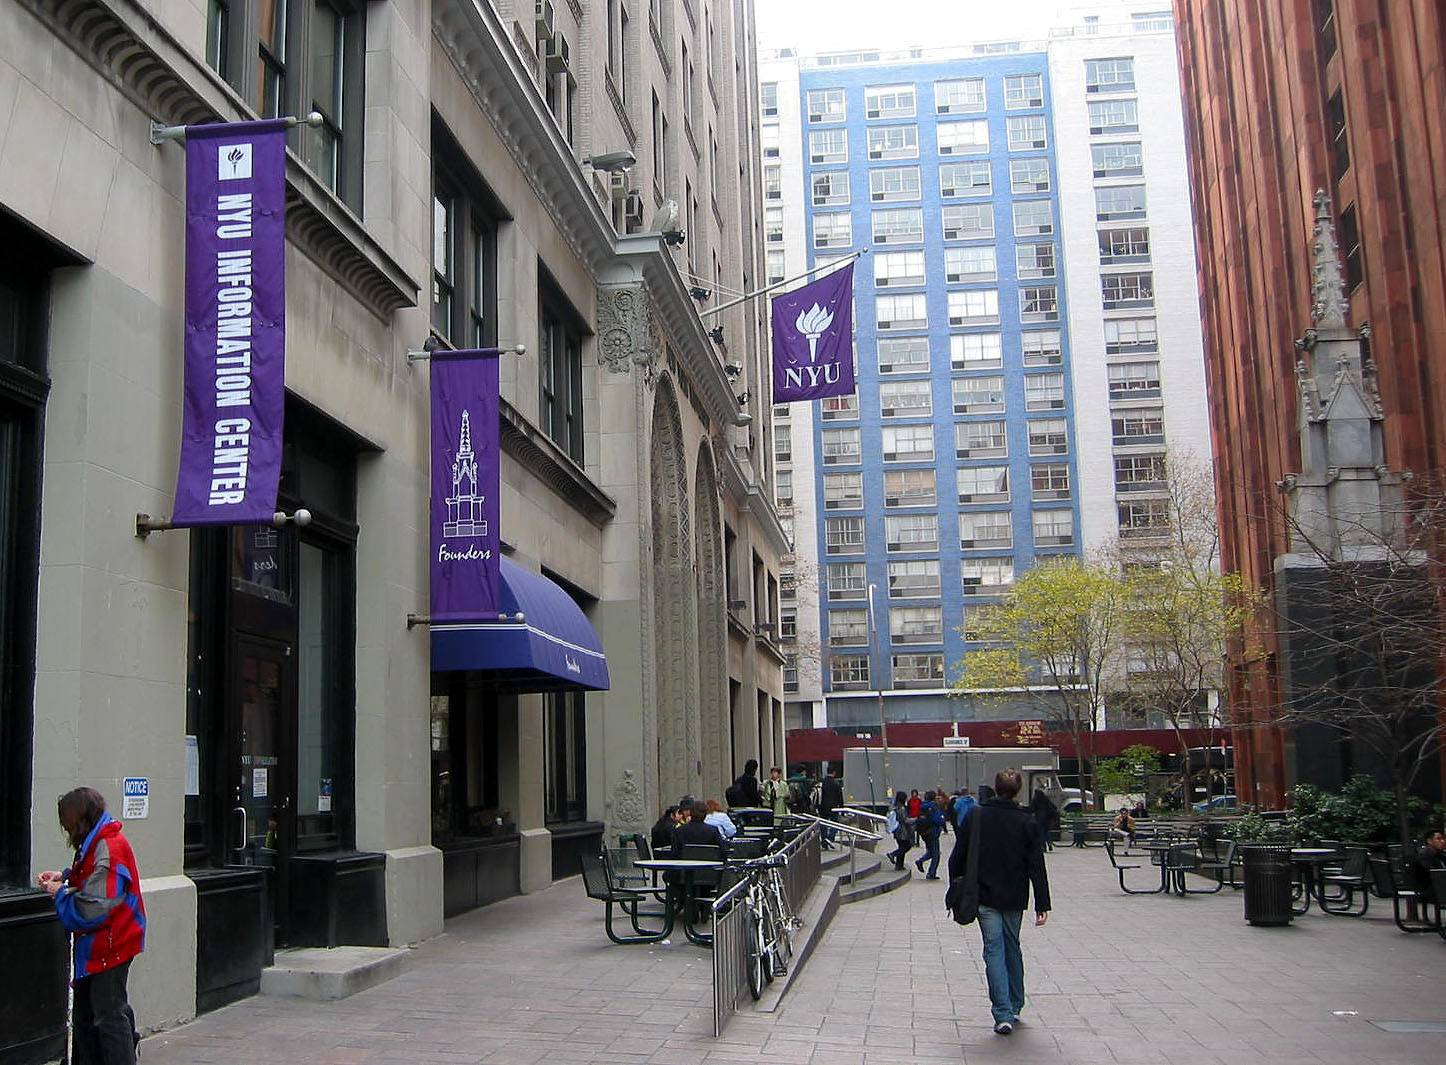 NYU Library Lane Photo Gallery by Hubert Steed at pbase com